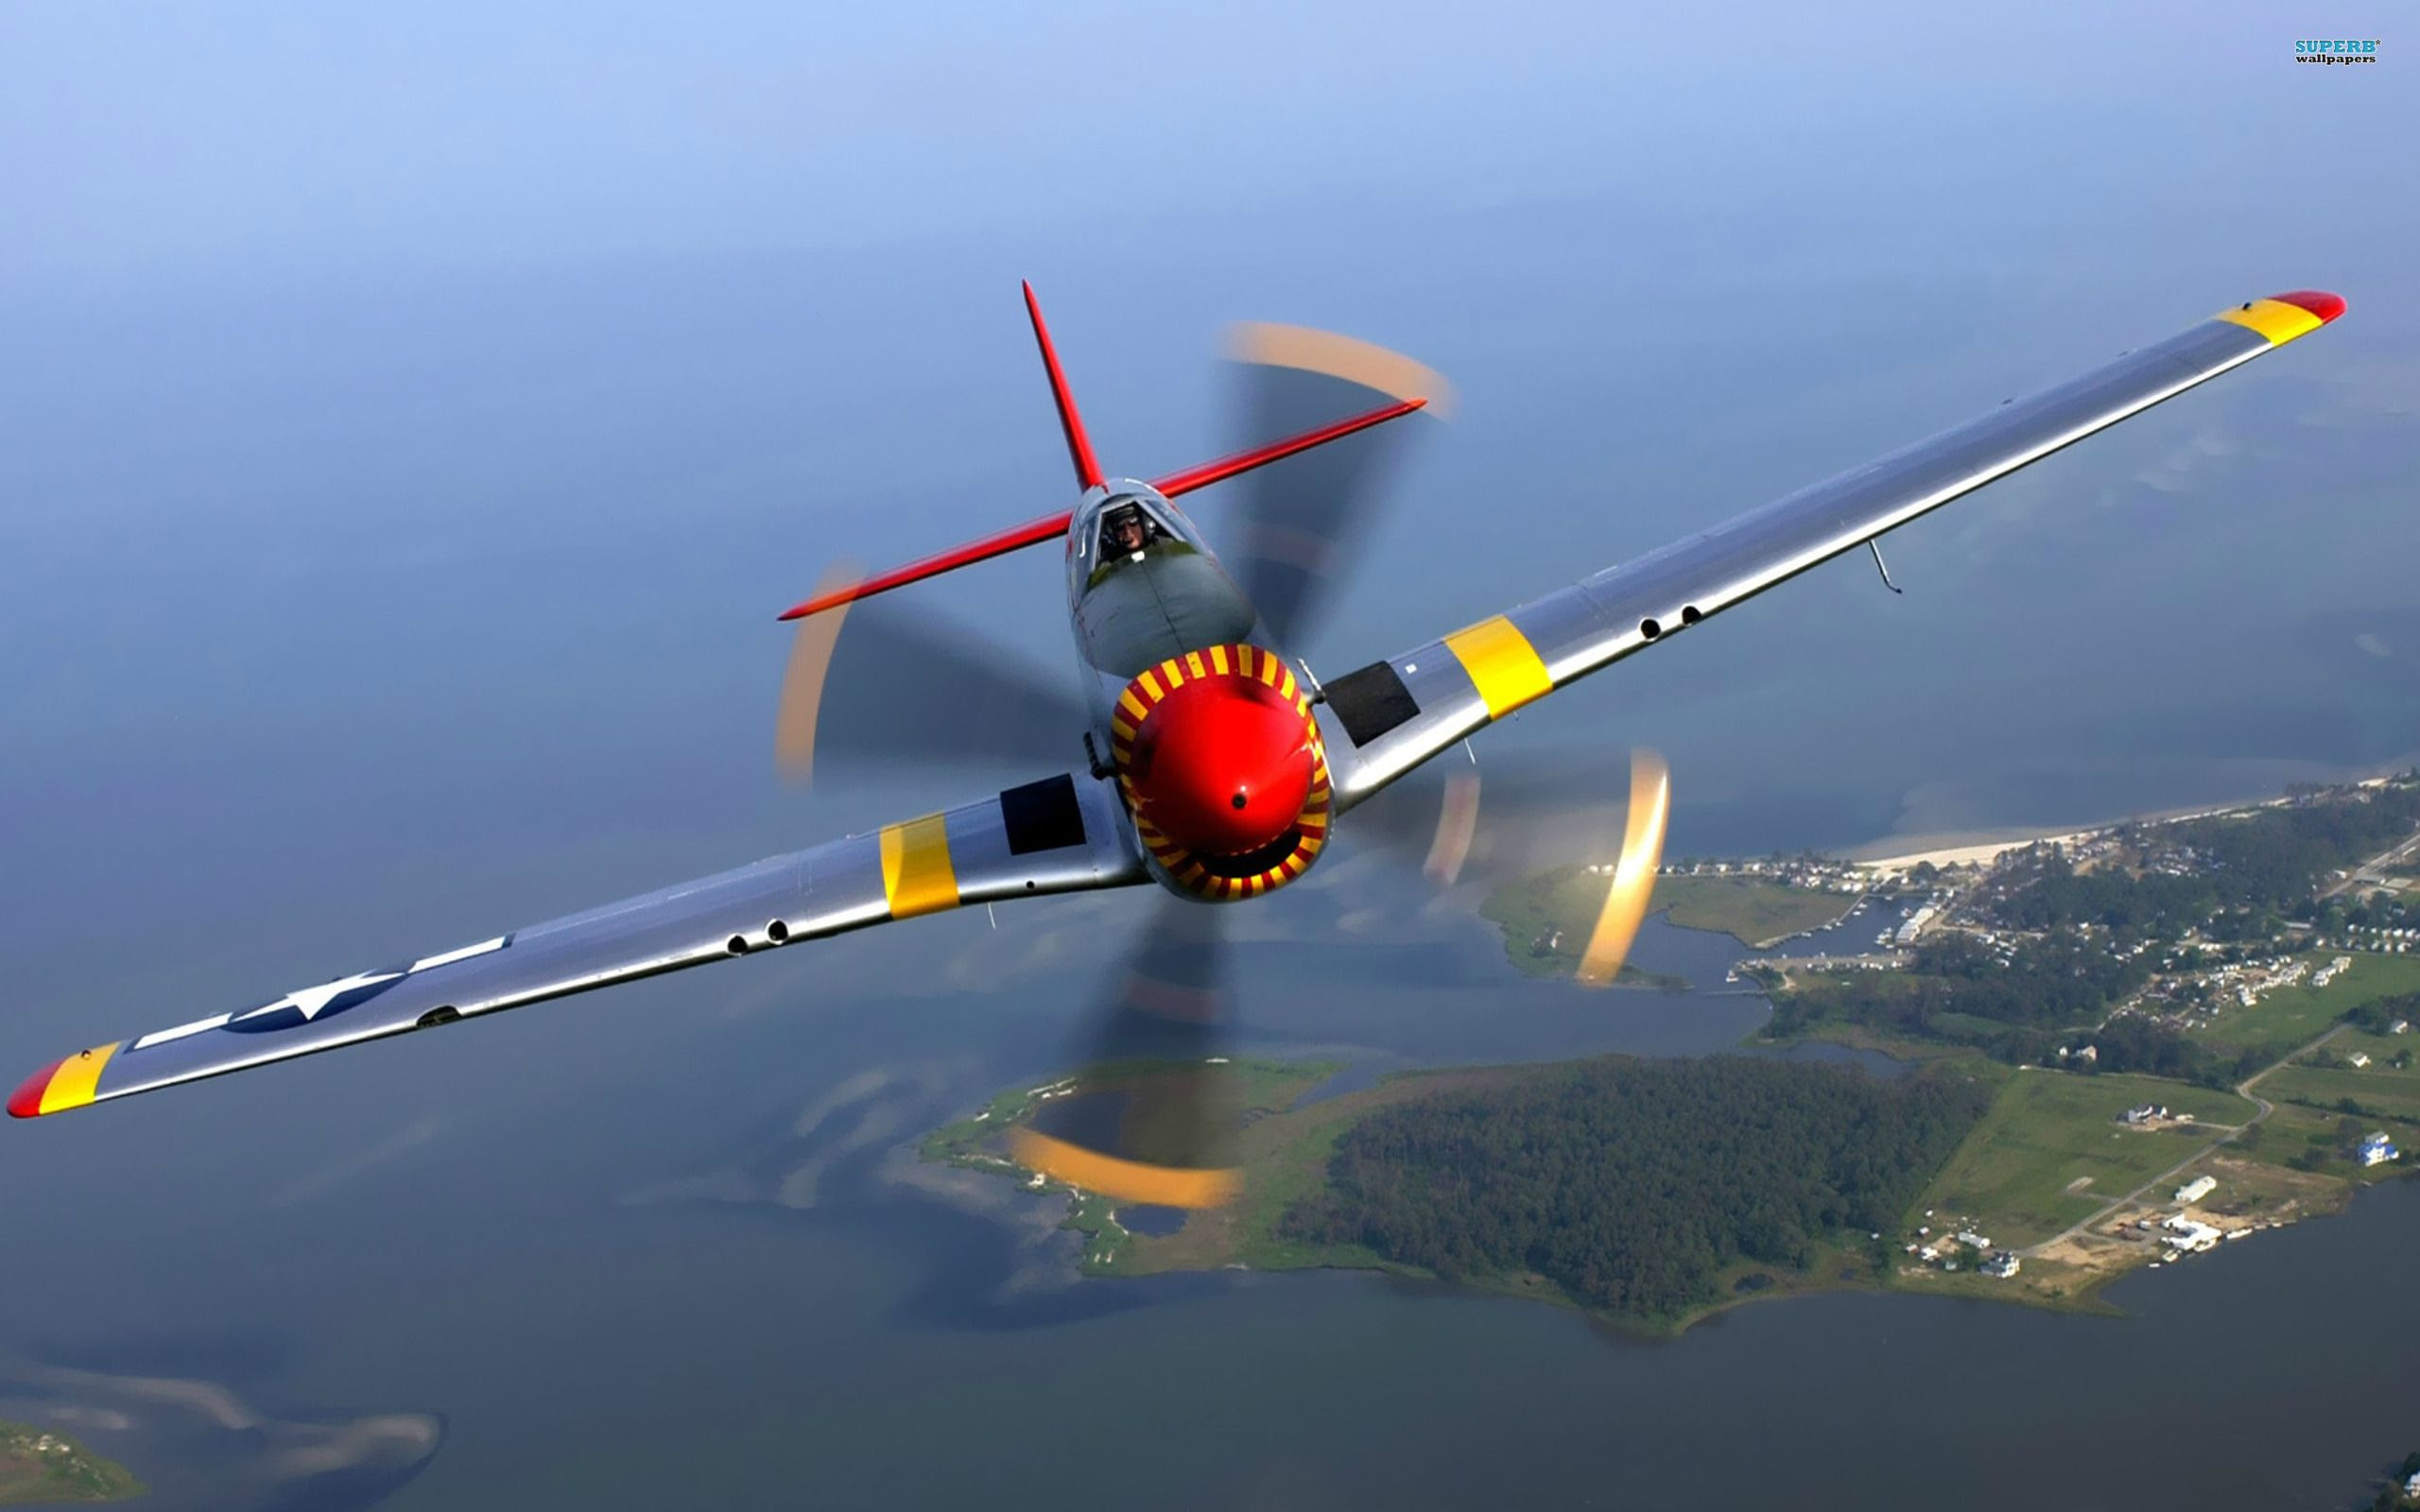 P51 Mustang Wallpaper Sf Wallpaper